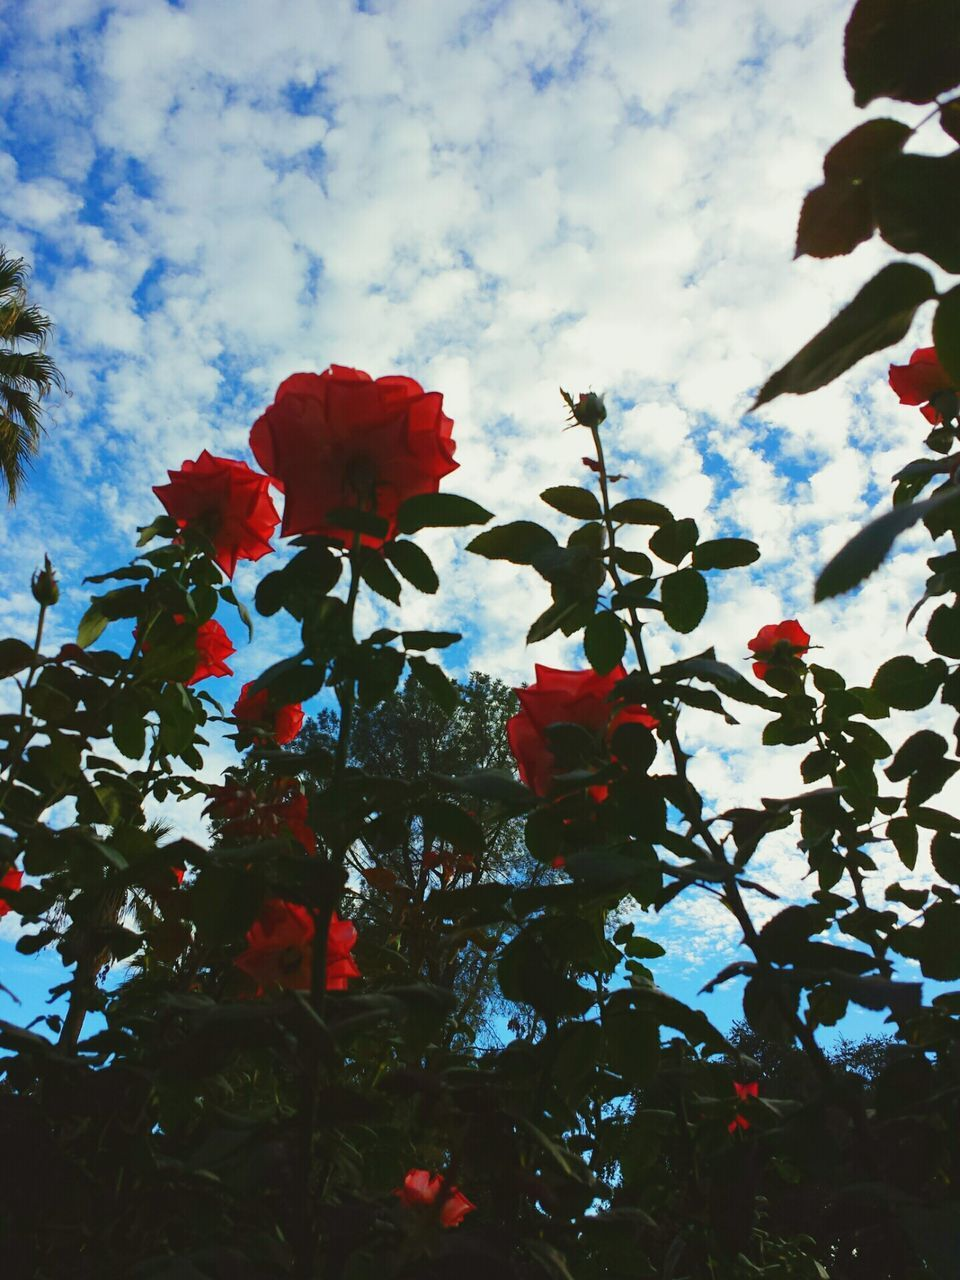 flower, beauty in nature, nature, petal, growth, fragility, freshness, red, low angle view, sky, no people, blooming, plant, cloud - sky, blossom, day, outdoors, tree, flower head, springtime, close-up, pedal